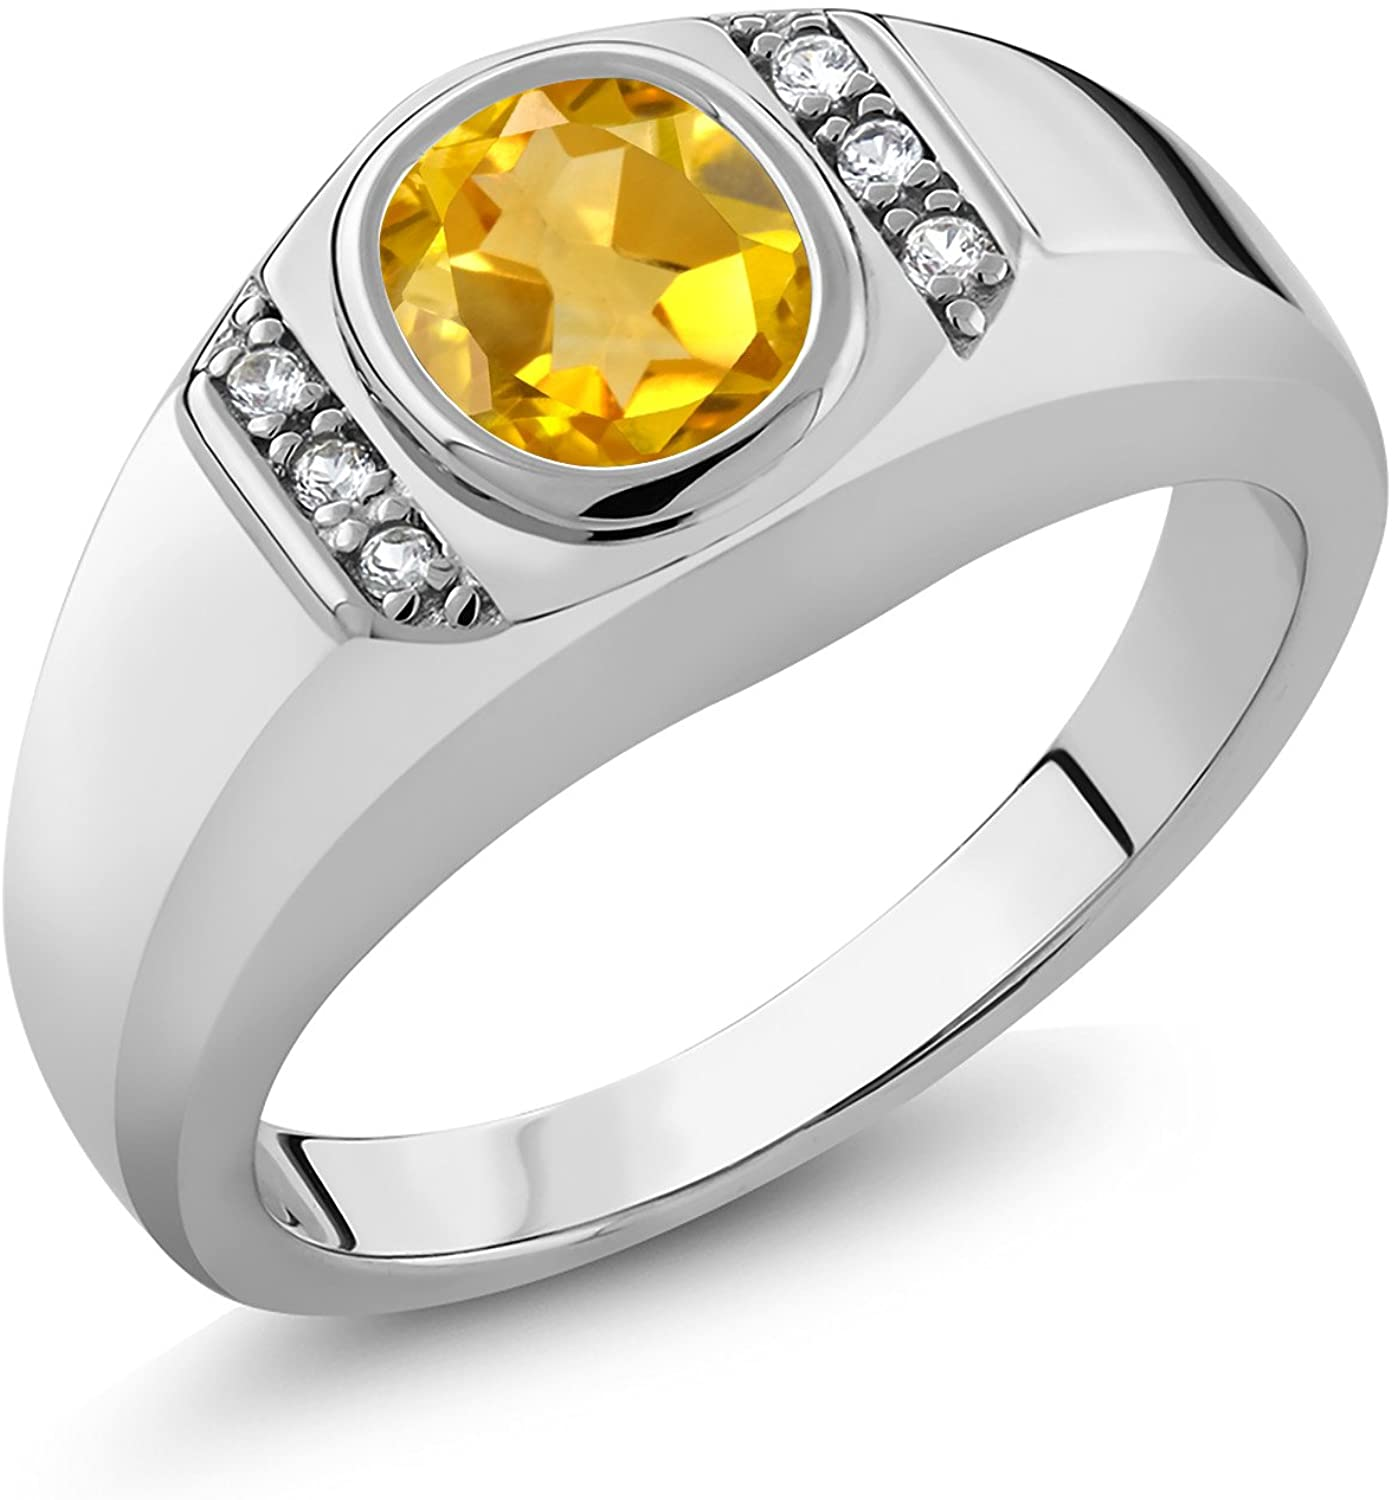 Gem Stone King Men's 925 Sterling Silver Oval Yellow Citrine and White Created Sapphire Ring (1.16 Cttw, Available 7,8,9,10,11,12,13)